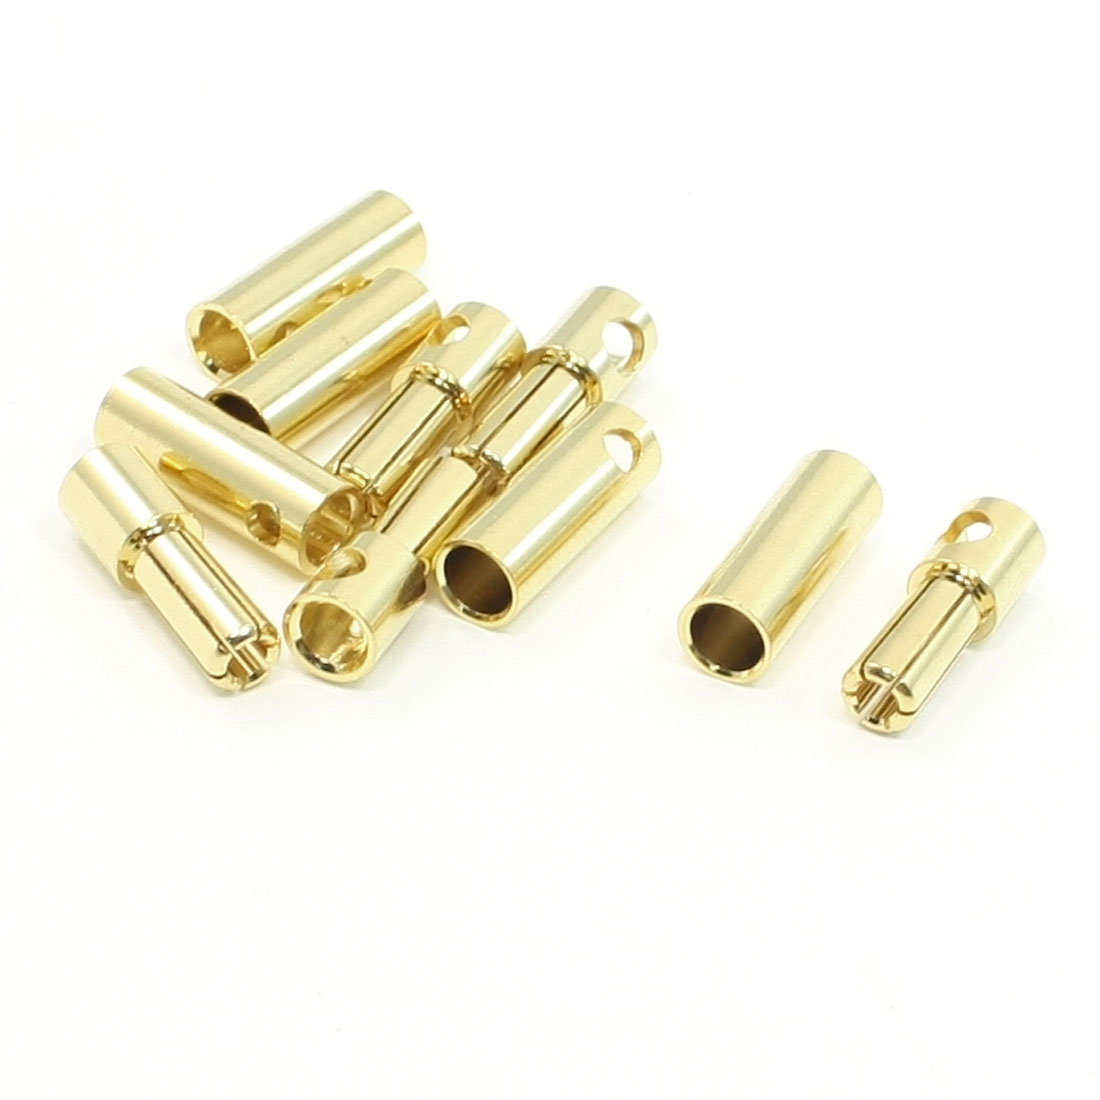 5 Pairs Gold Tone Metal RC Battery Plug Female Male Connector 5mm